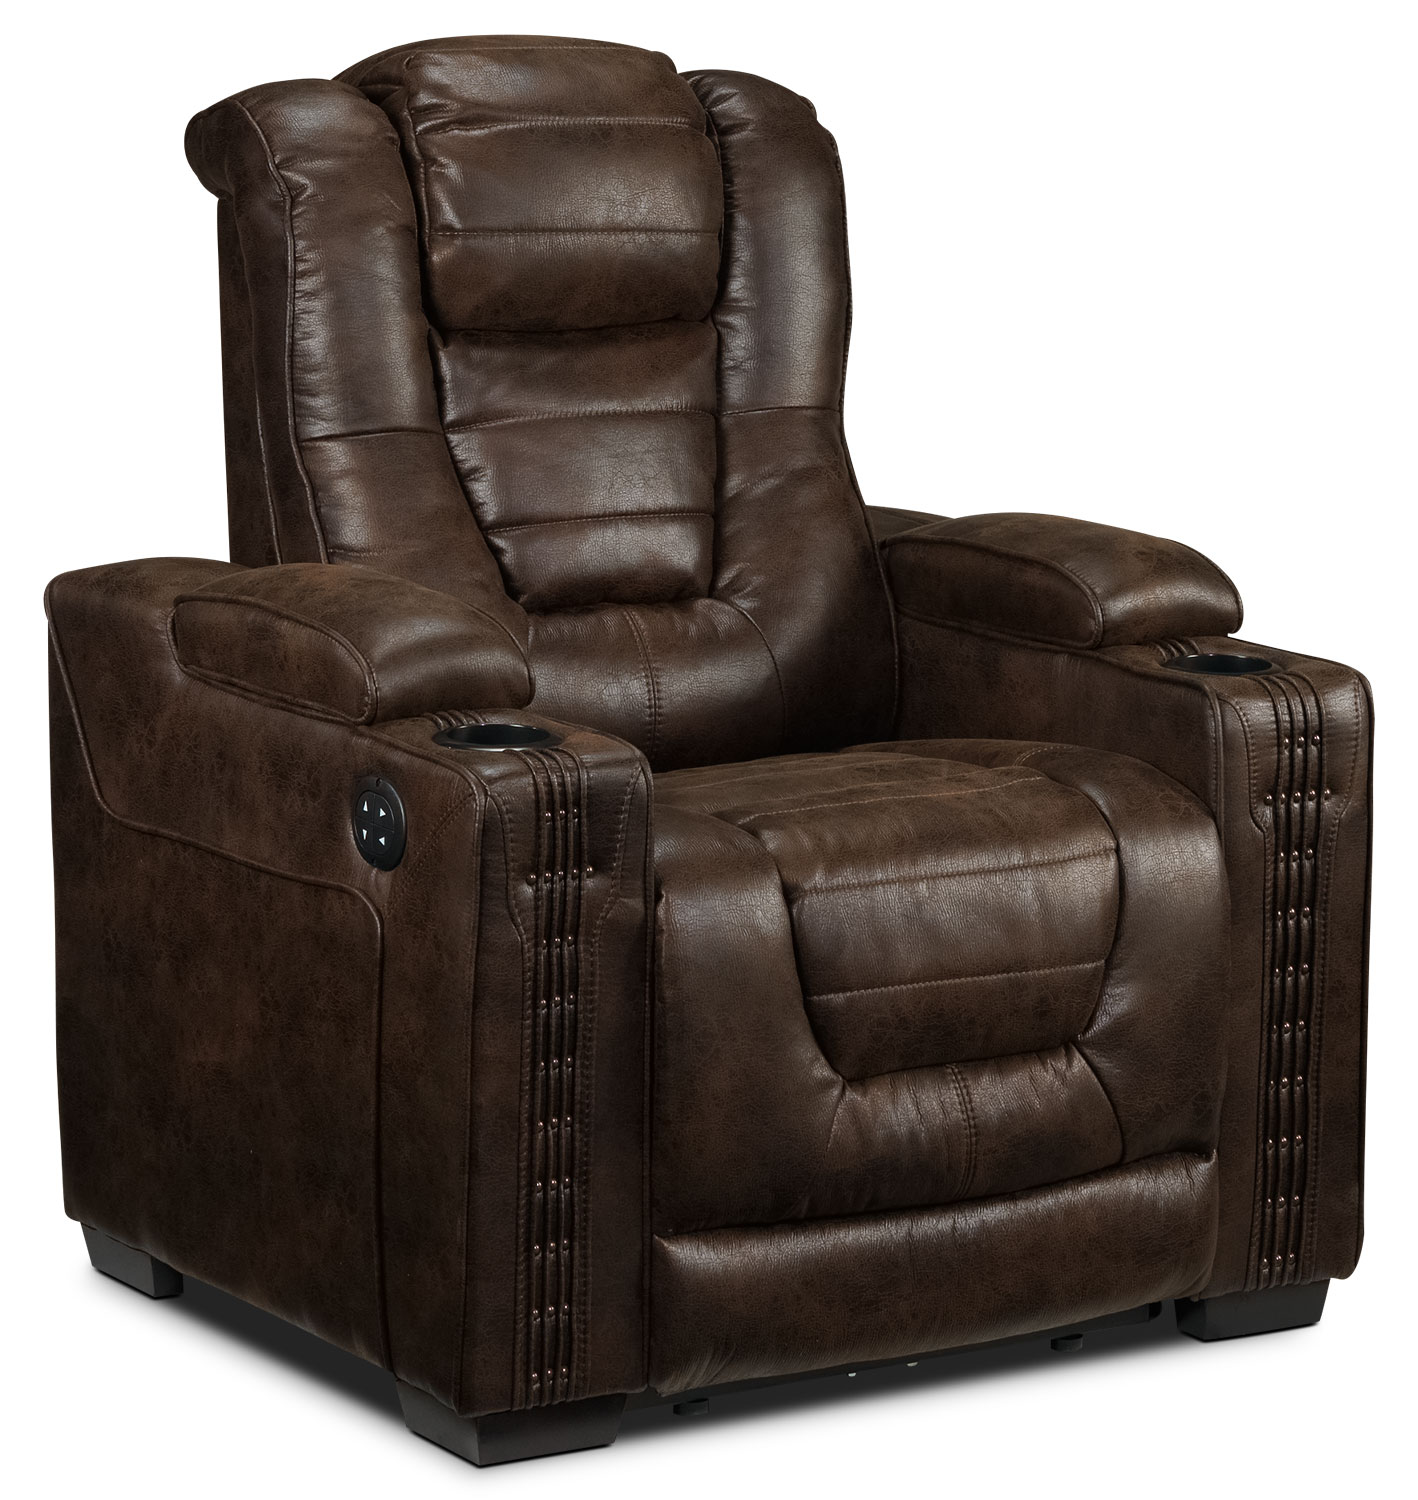 Dakota power reclining loveseat walnut leon 39 s Power loveseat recliner